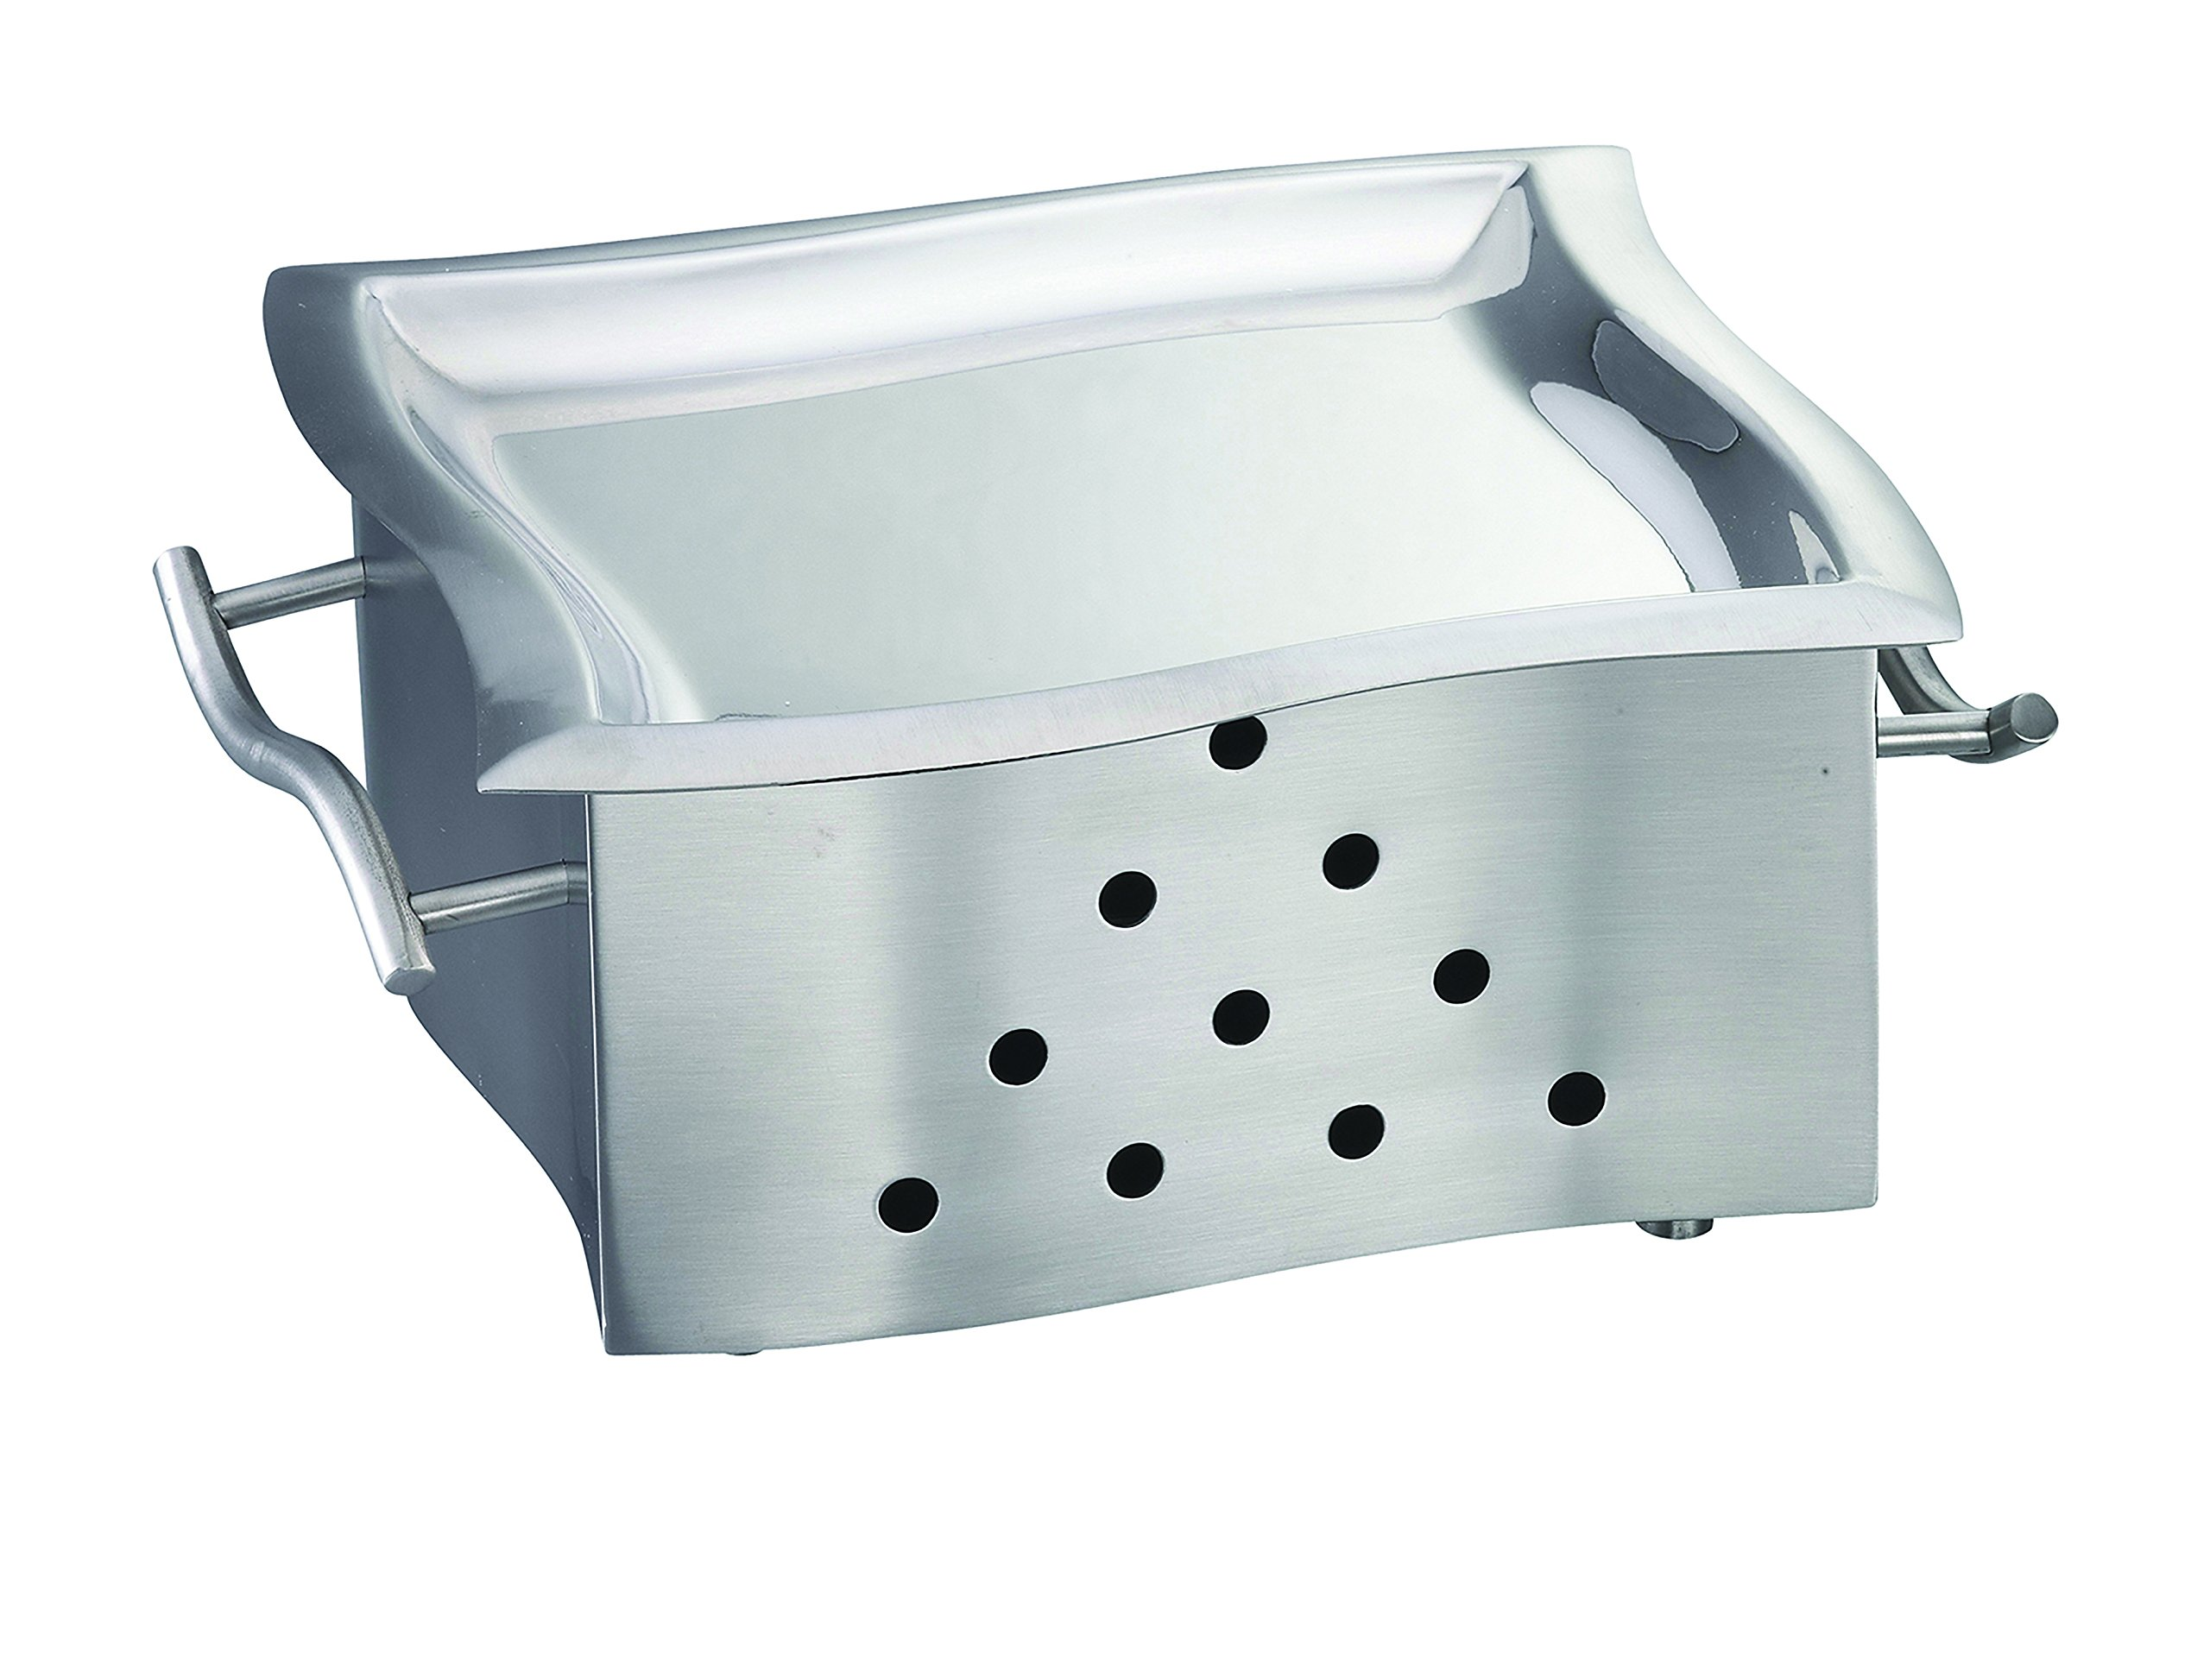 TableCraft Products SW98N Stainless Steel Square Snack Warmer with Platter